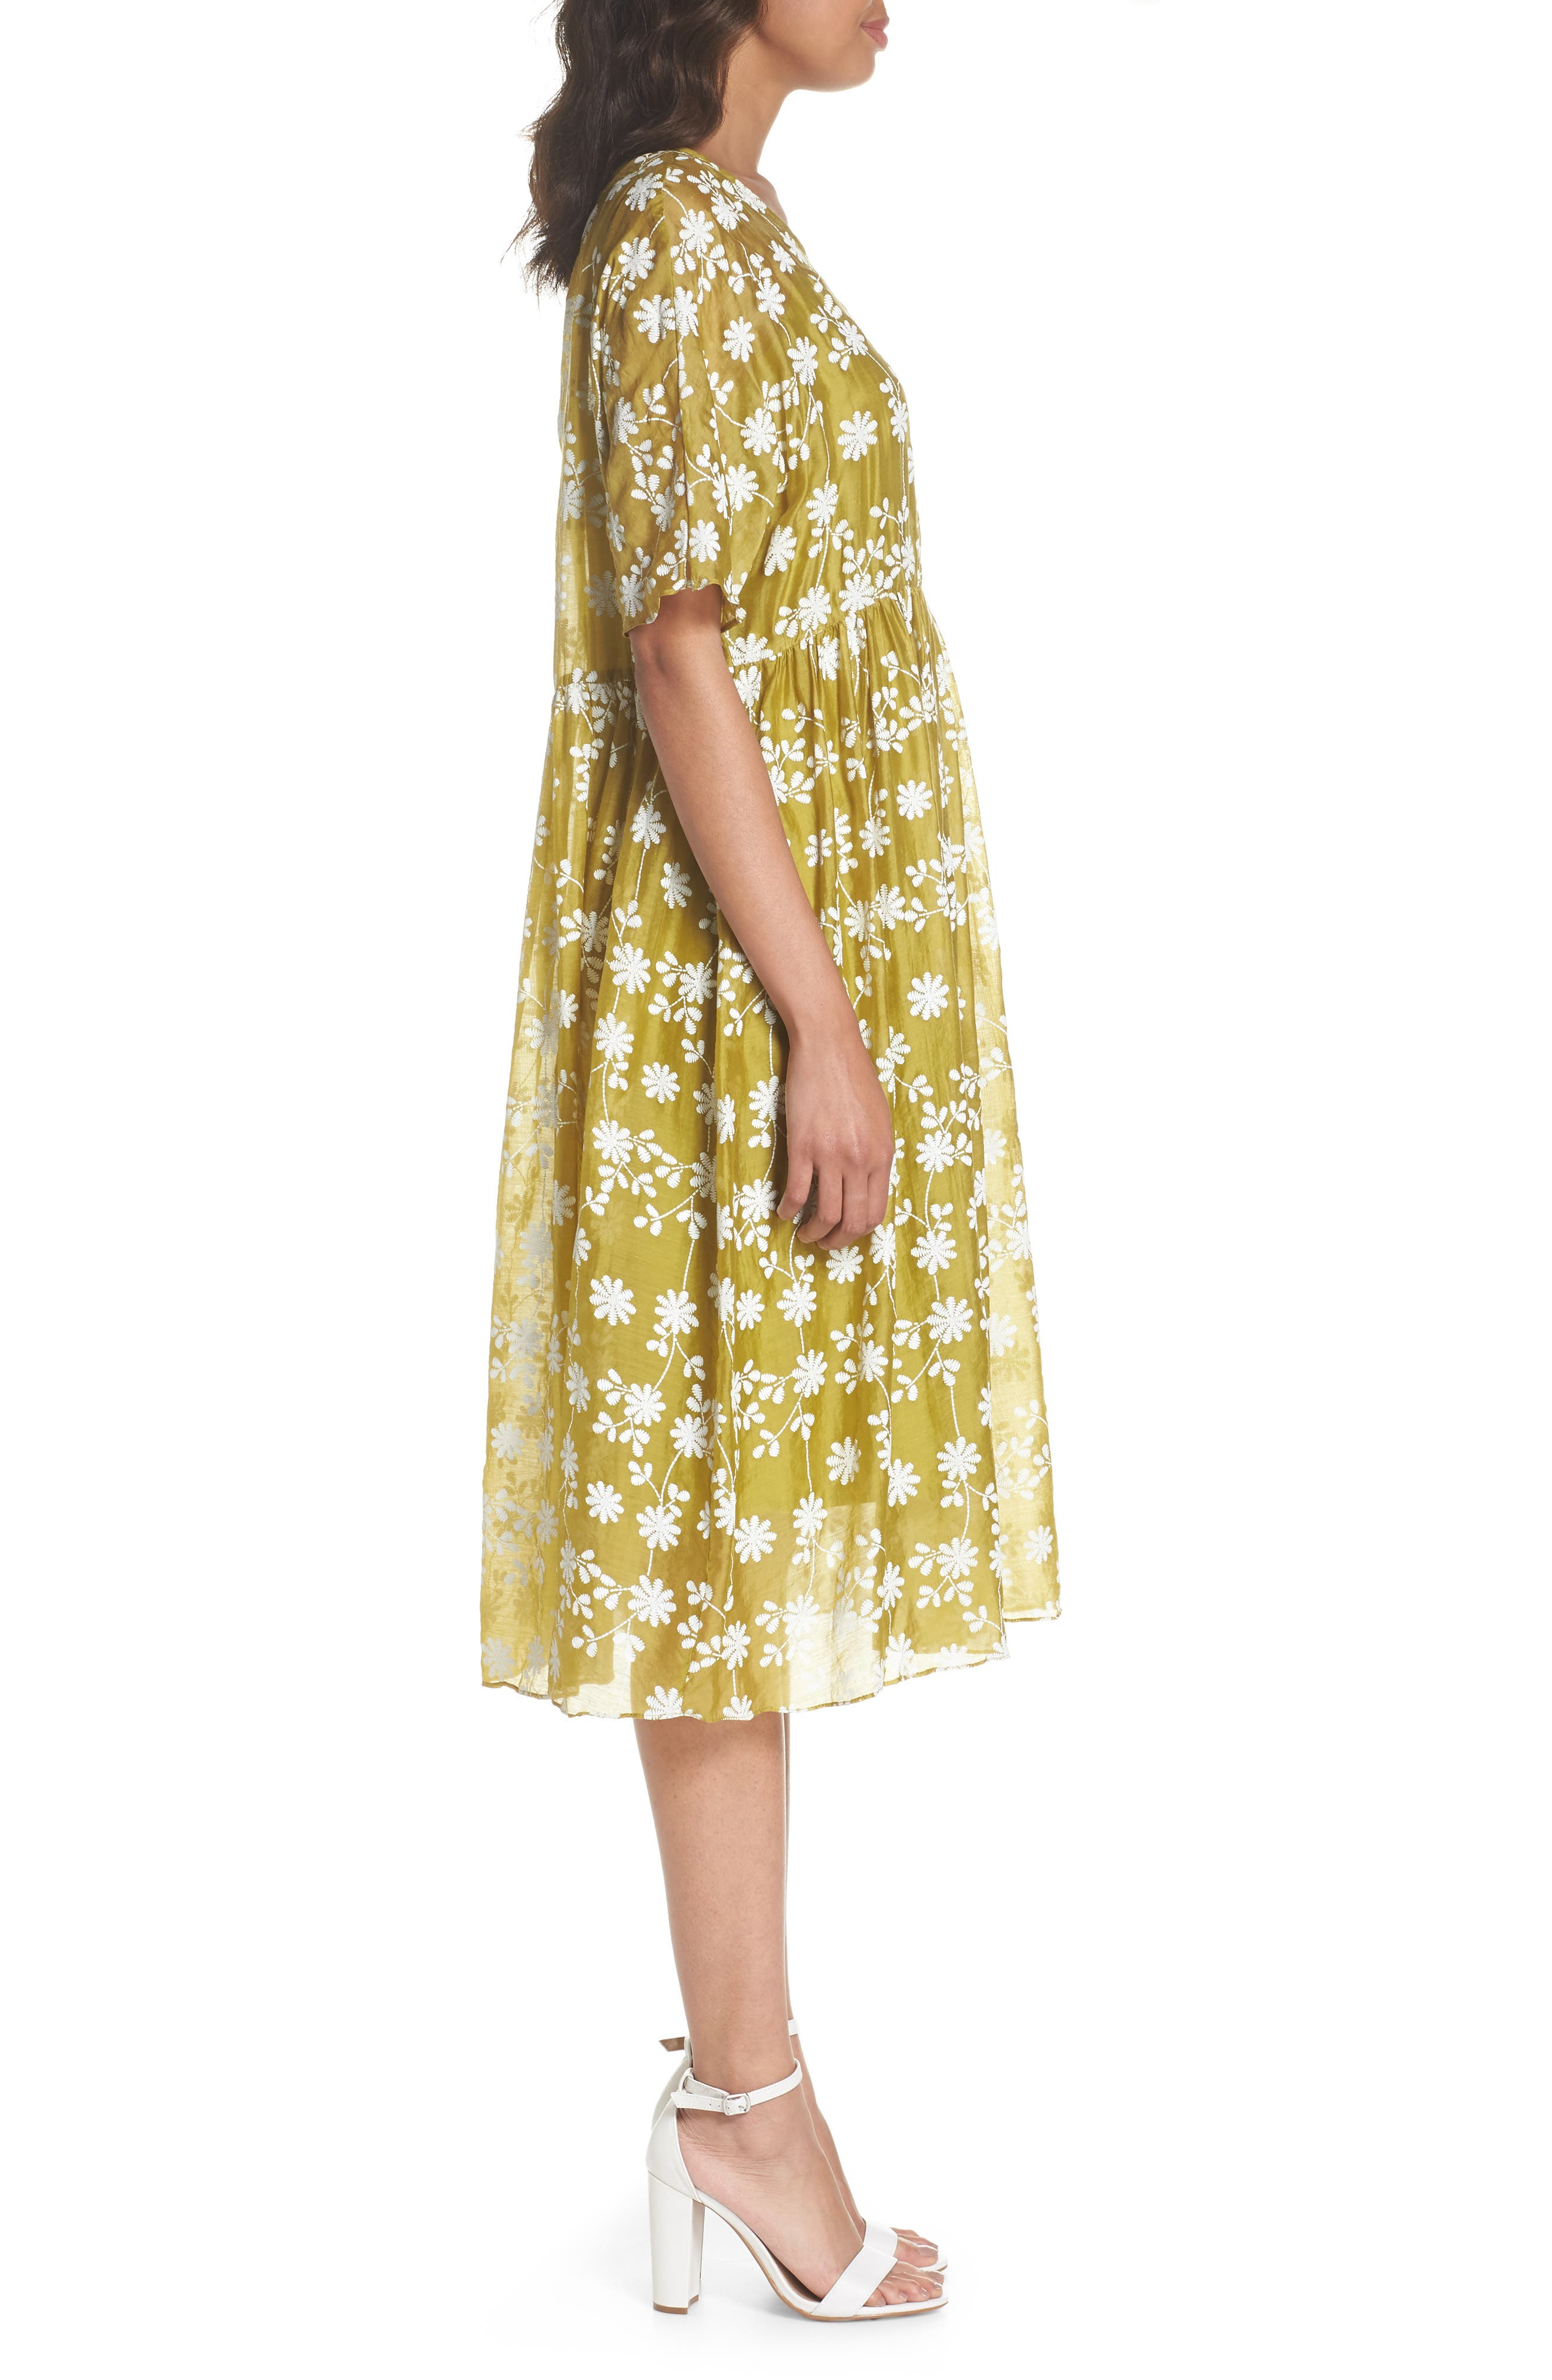 Daisy Picking Floral Dress,                             Alternate thumbnail 3, color,                             700